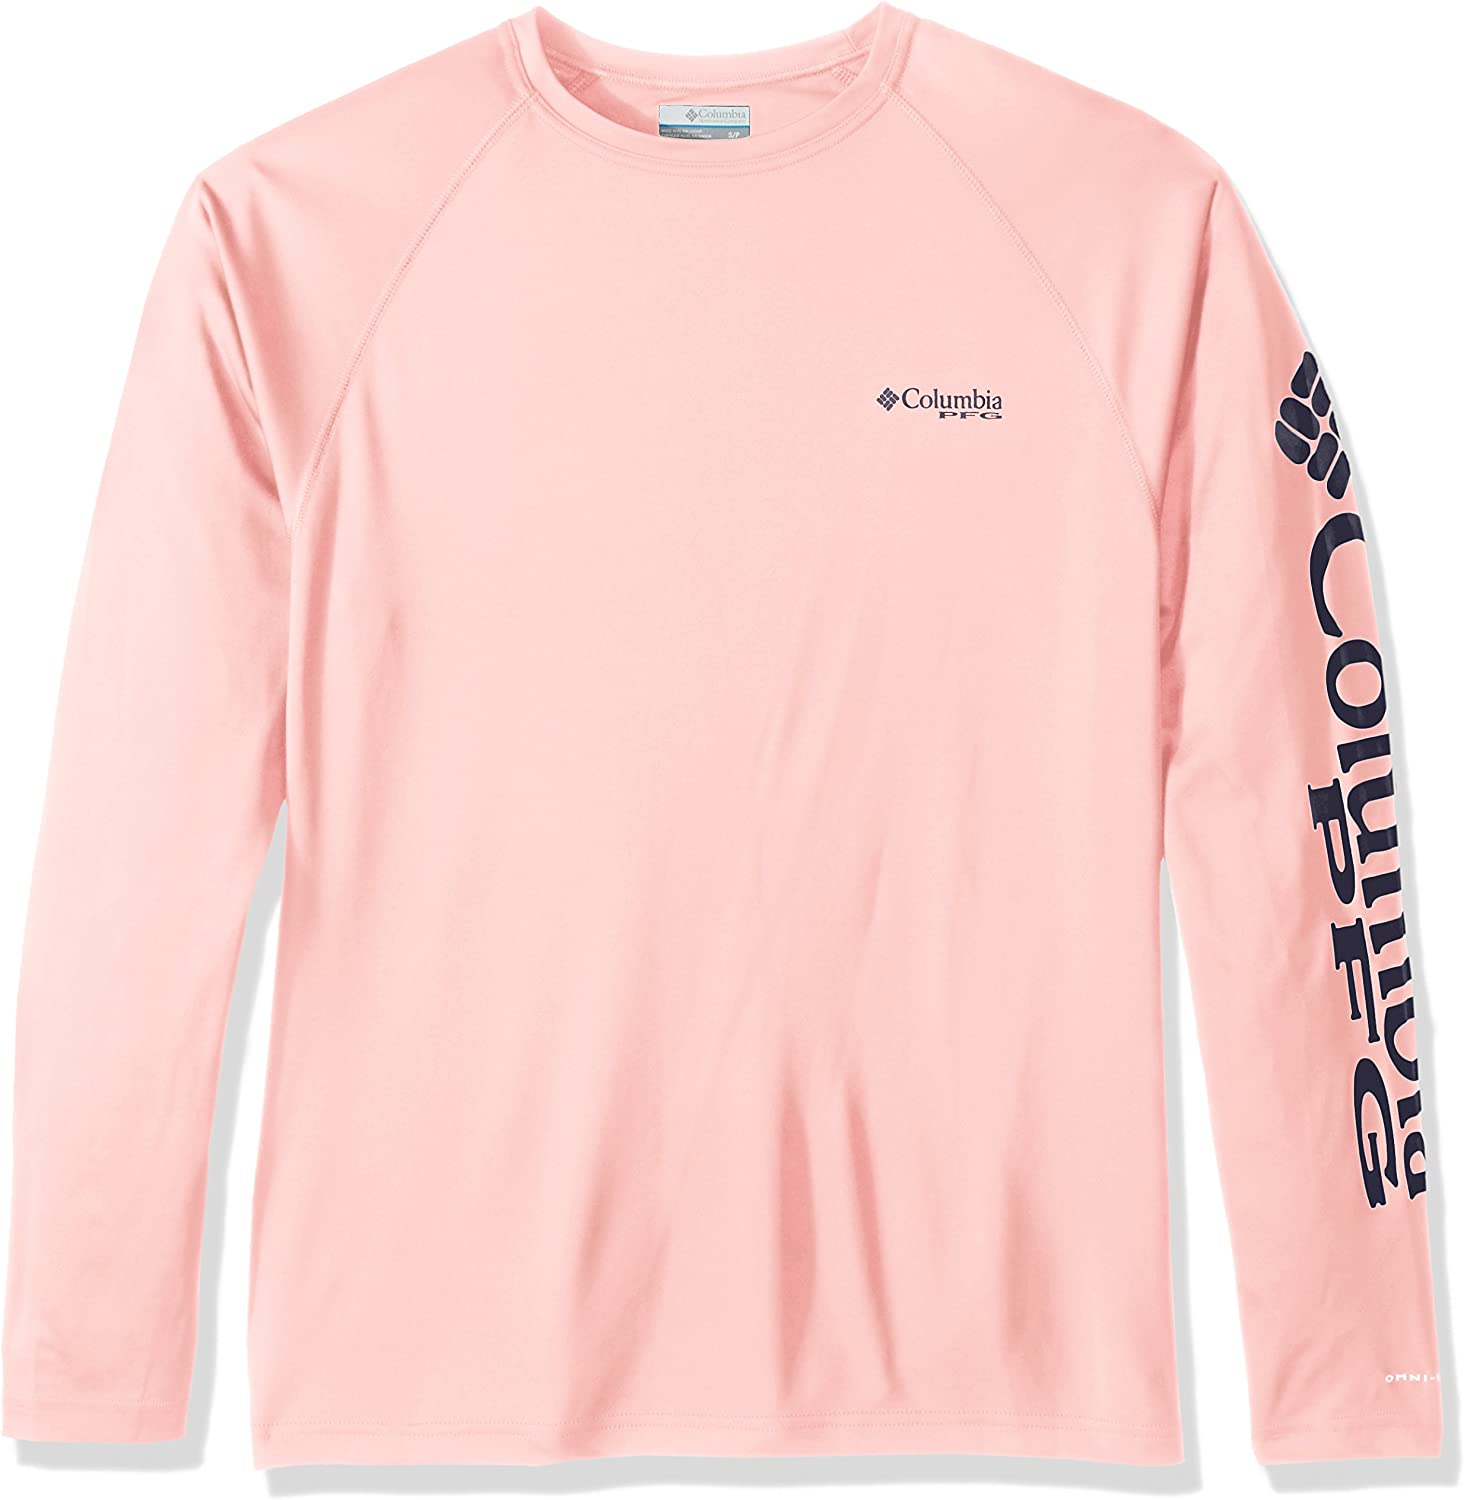 Columbia Men's PFG Terminal Long-Sleeve Tackle Online limited 5 ☆ very popular product Shirt